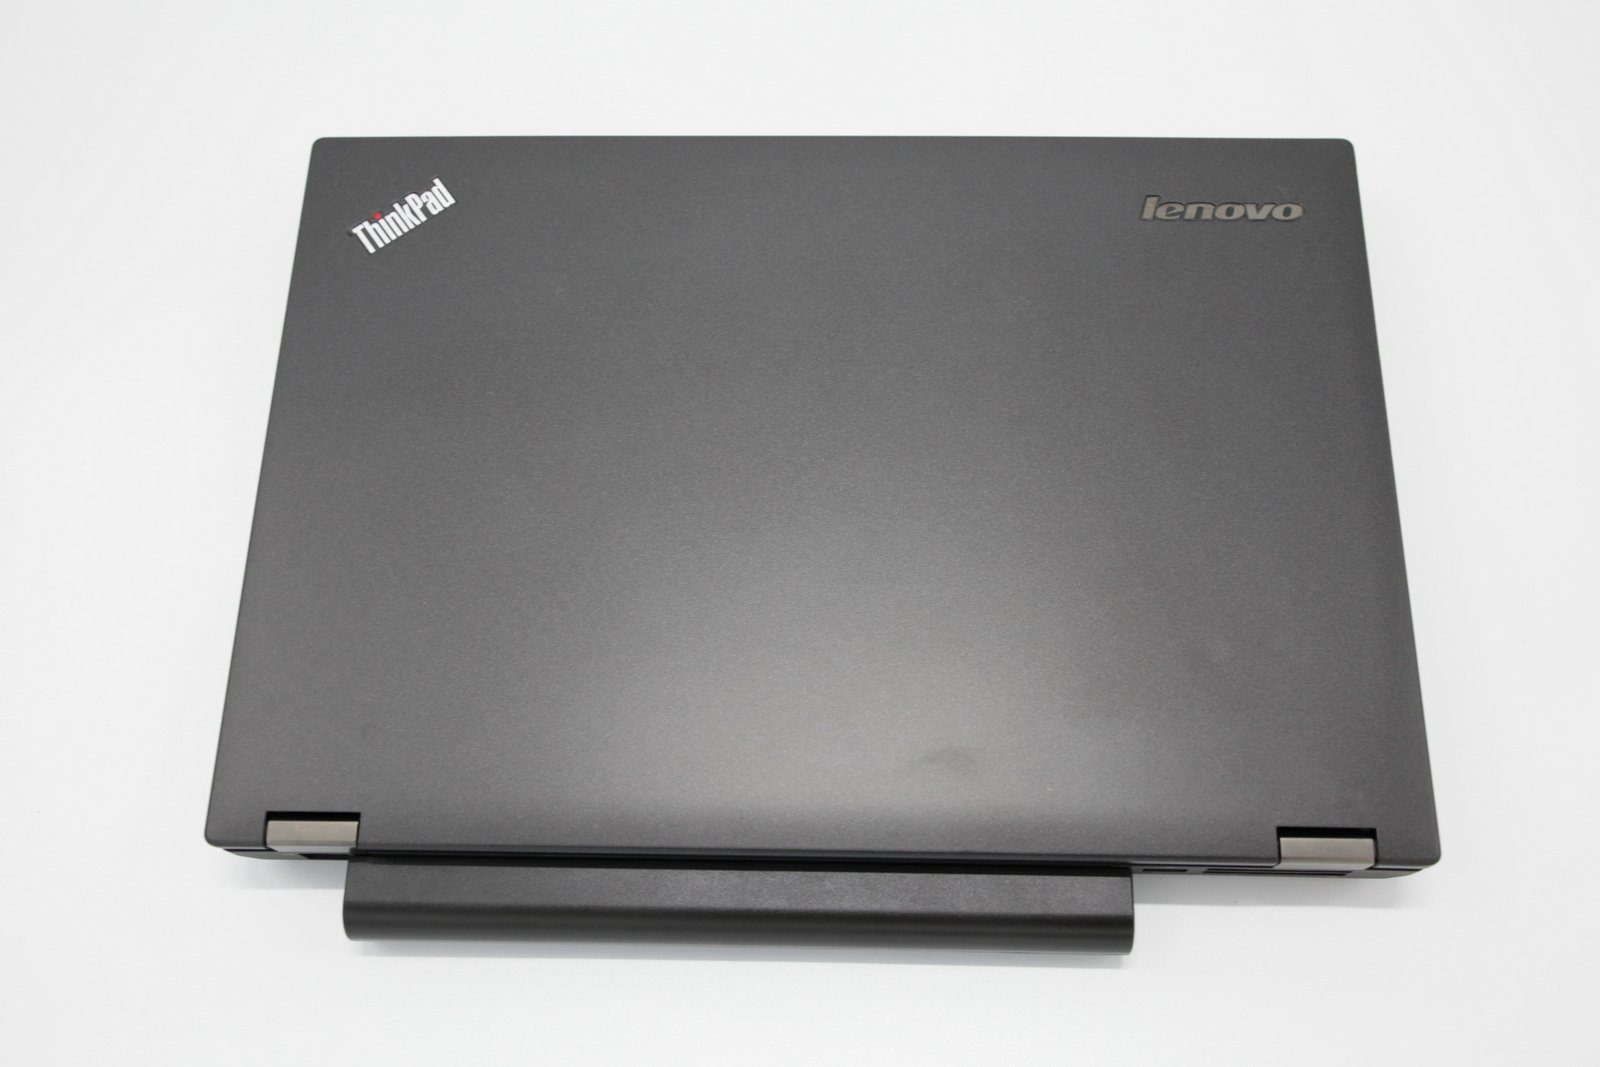 Lenovo ThinkPad T440P IPS Laptop: 1TB SSD, Core i7, 8GB RAM, NVIDIA 730M, VAT - CruiseTech